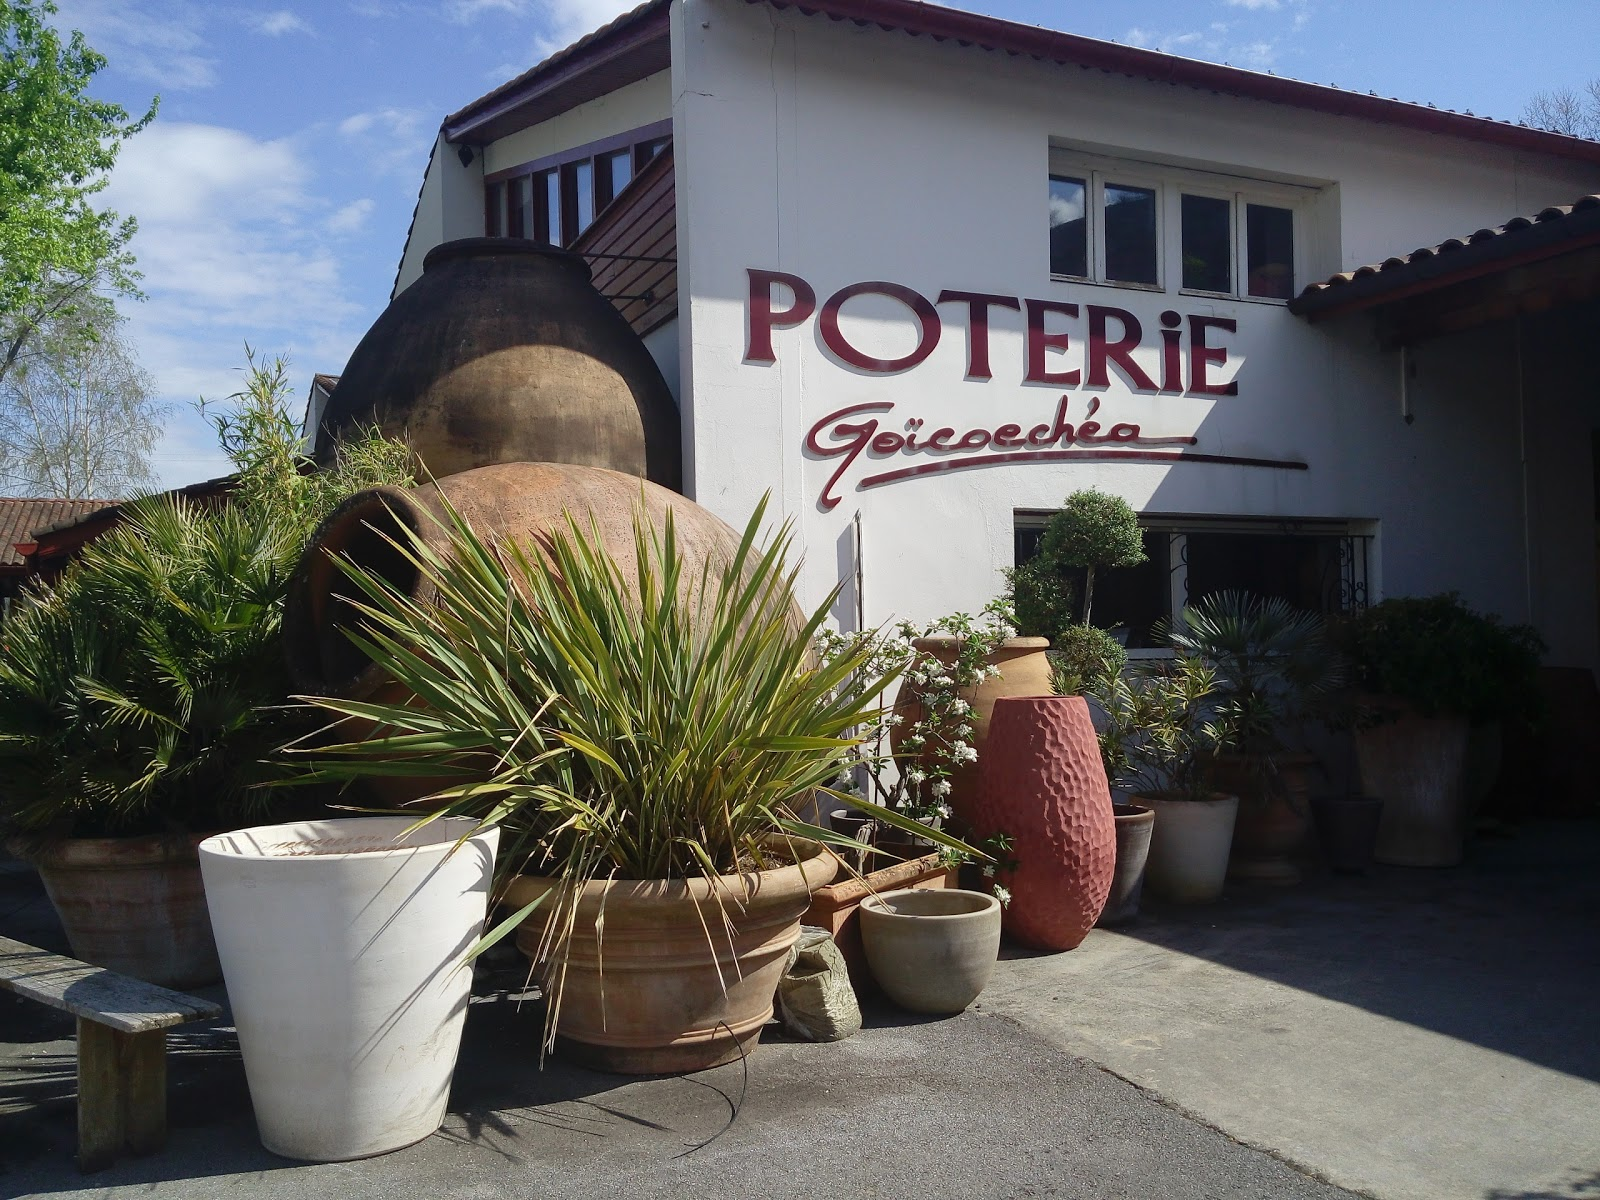 Poterie Goicoechea Saint Jean De Luz Saint Jean De Luz visit poterie goicoechea on your trip to osses or france